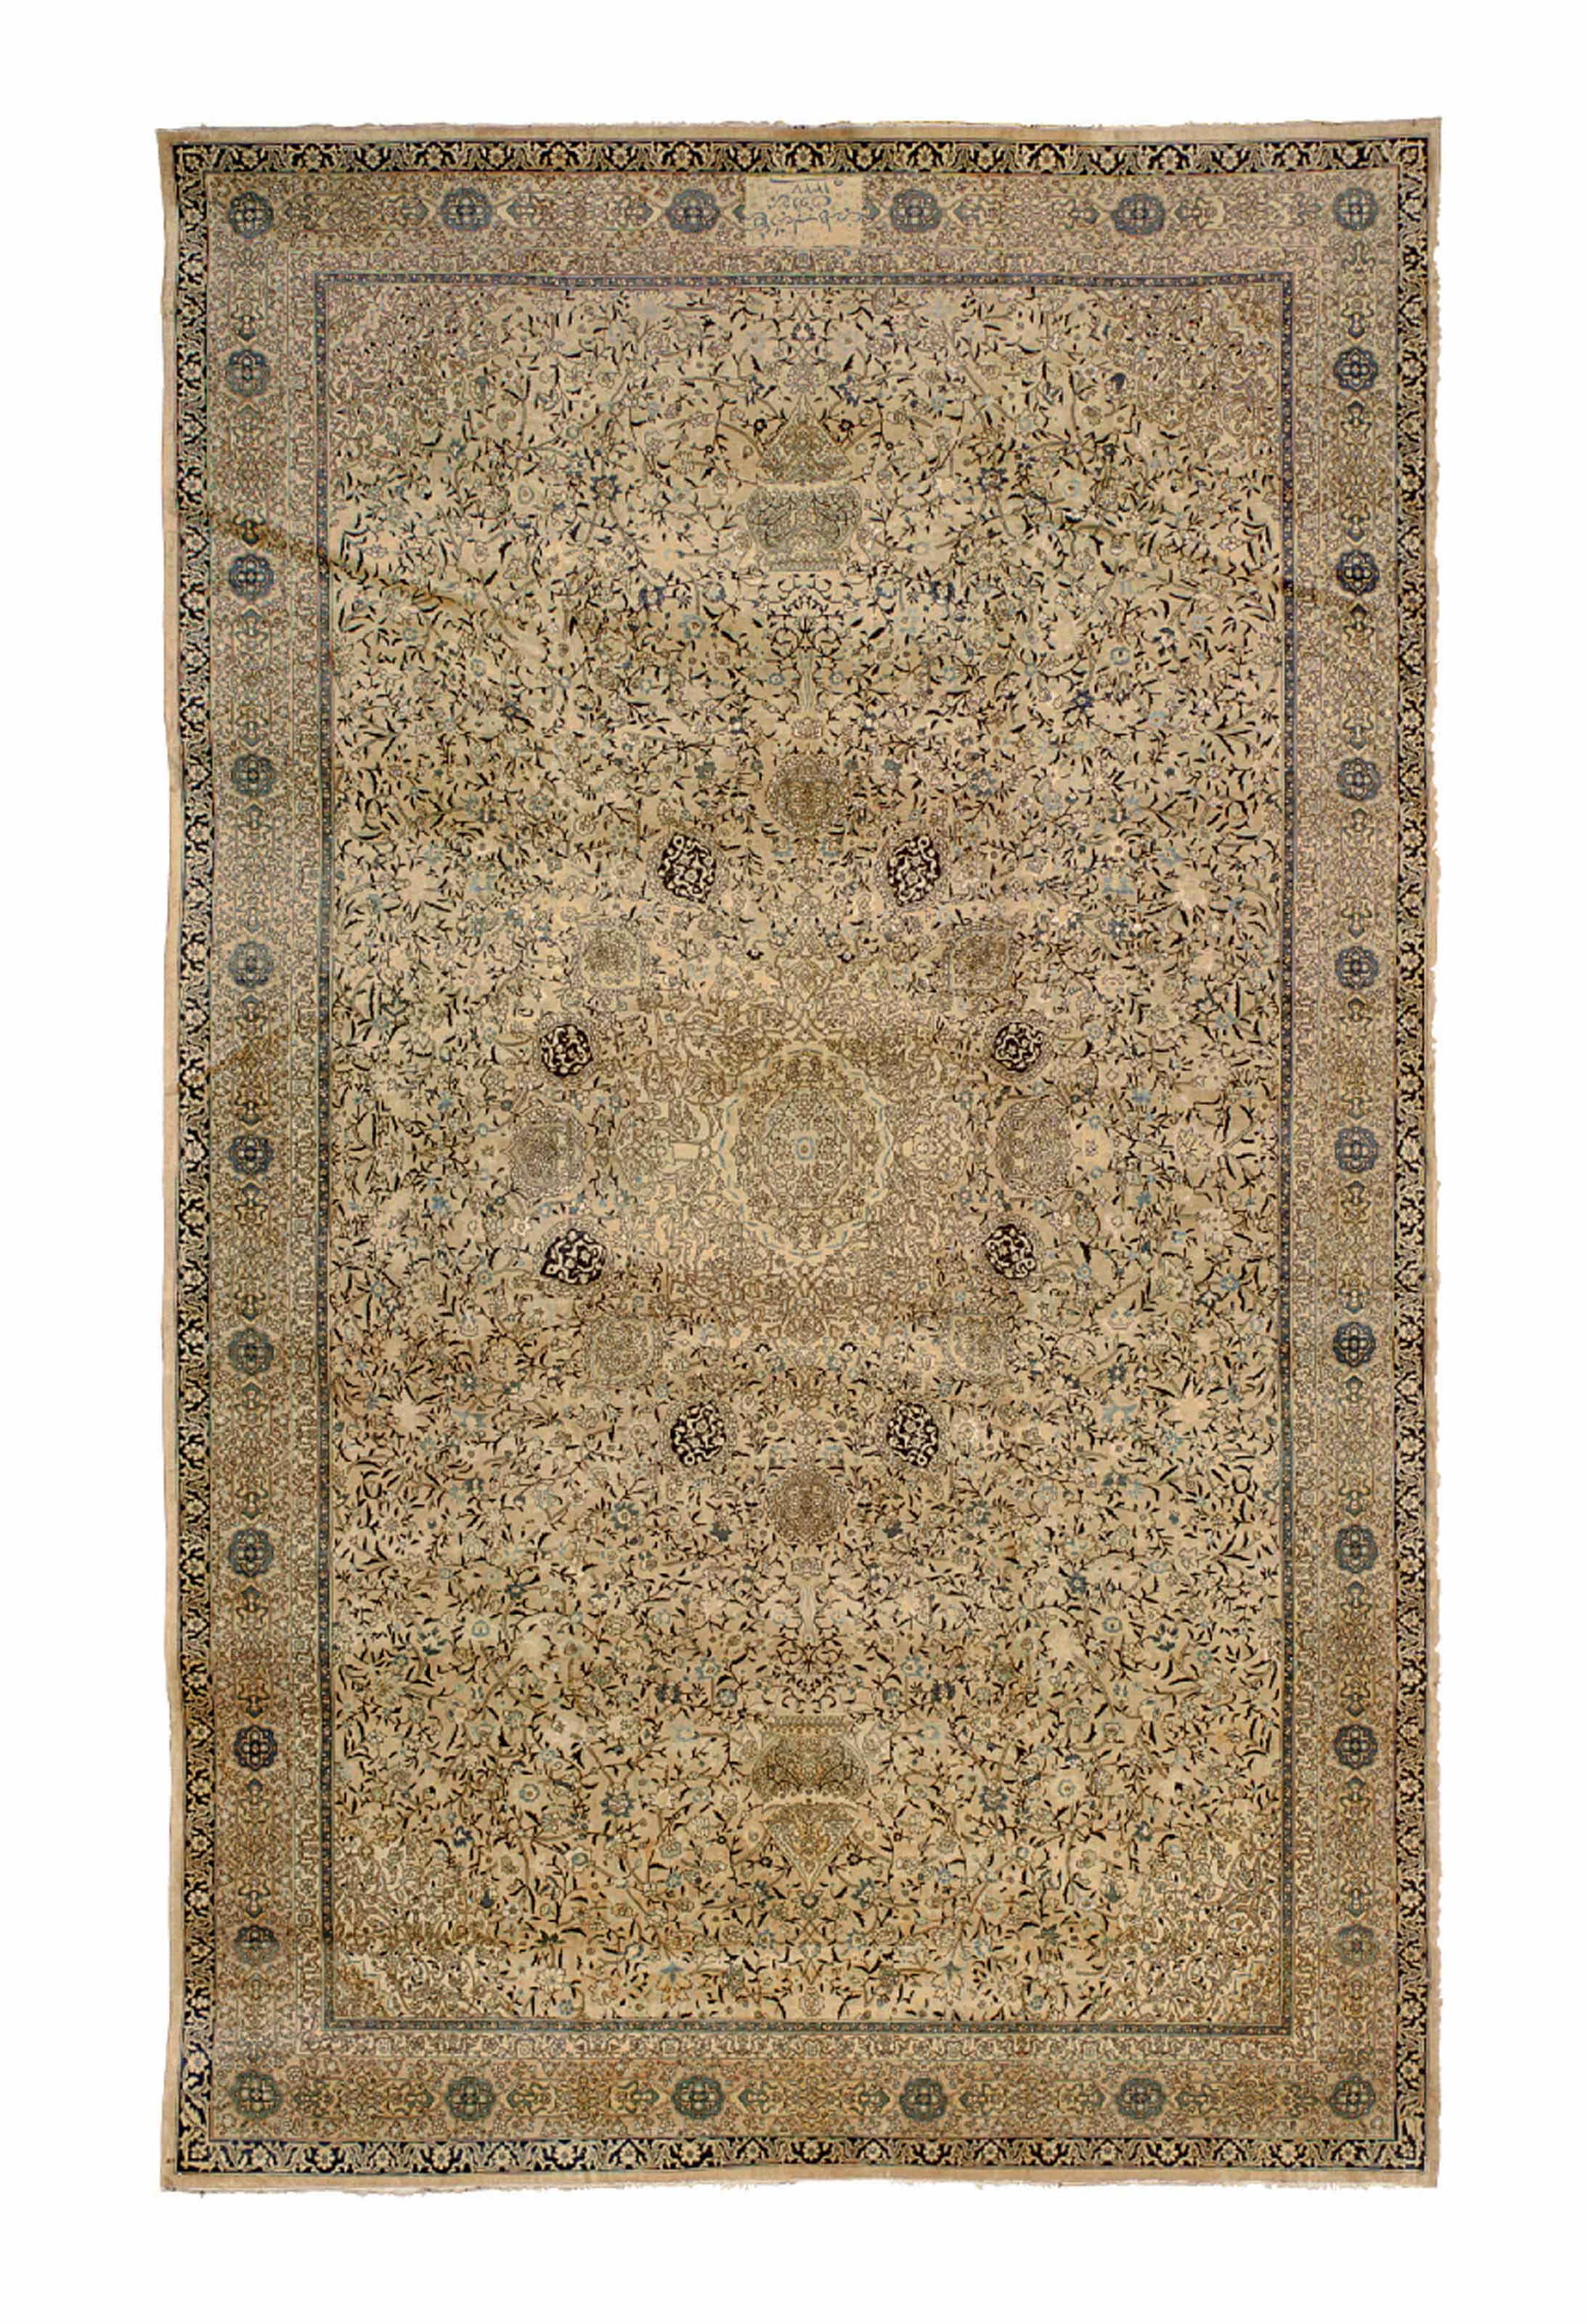 A PERSIAN CARPET WITH SILK HIG